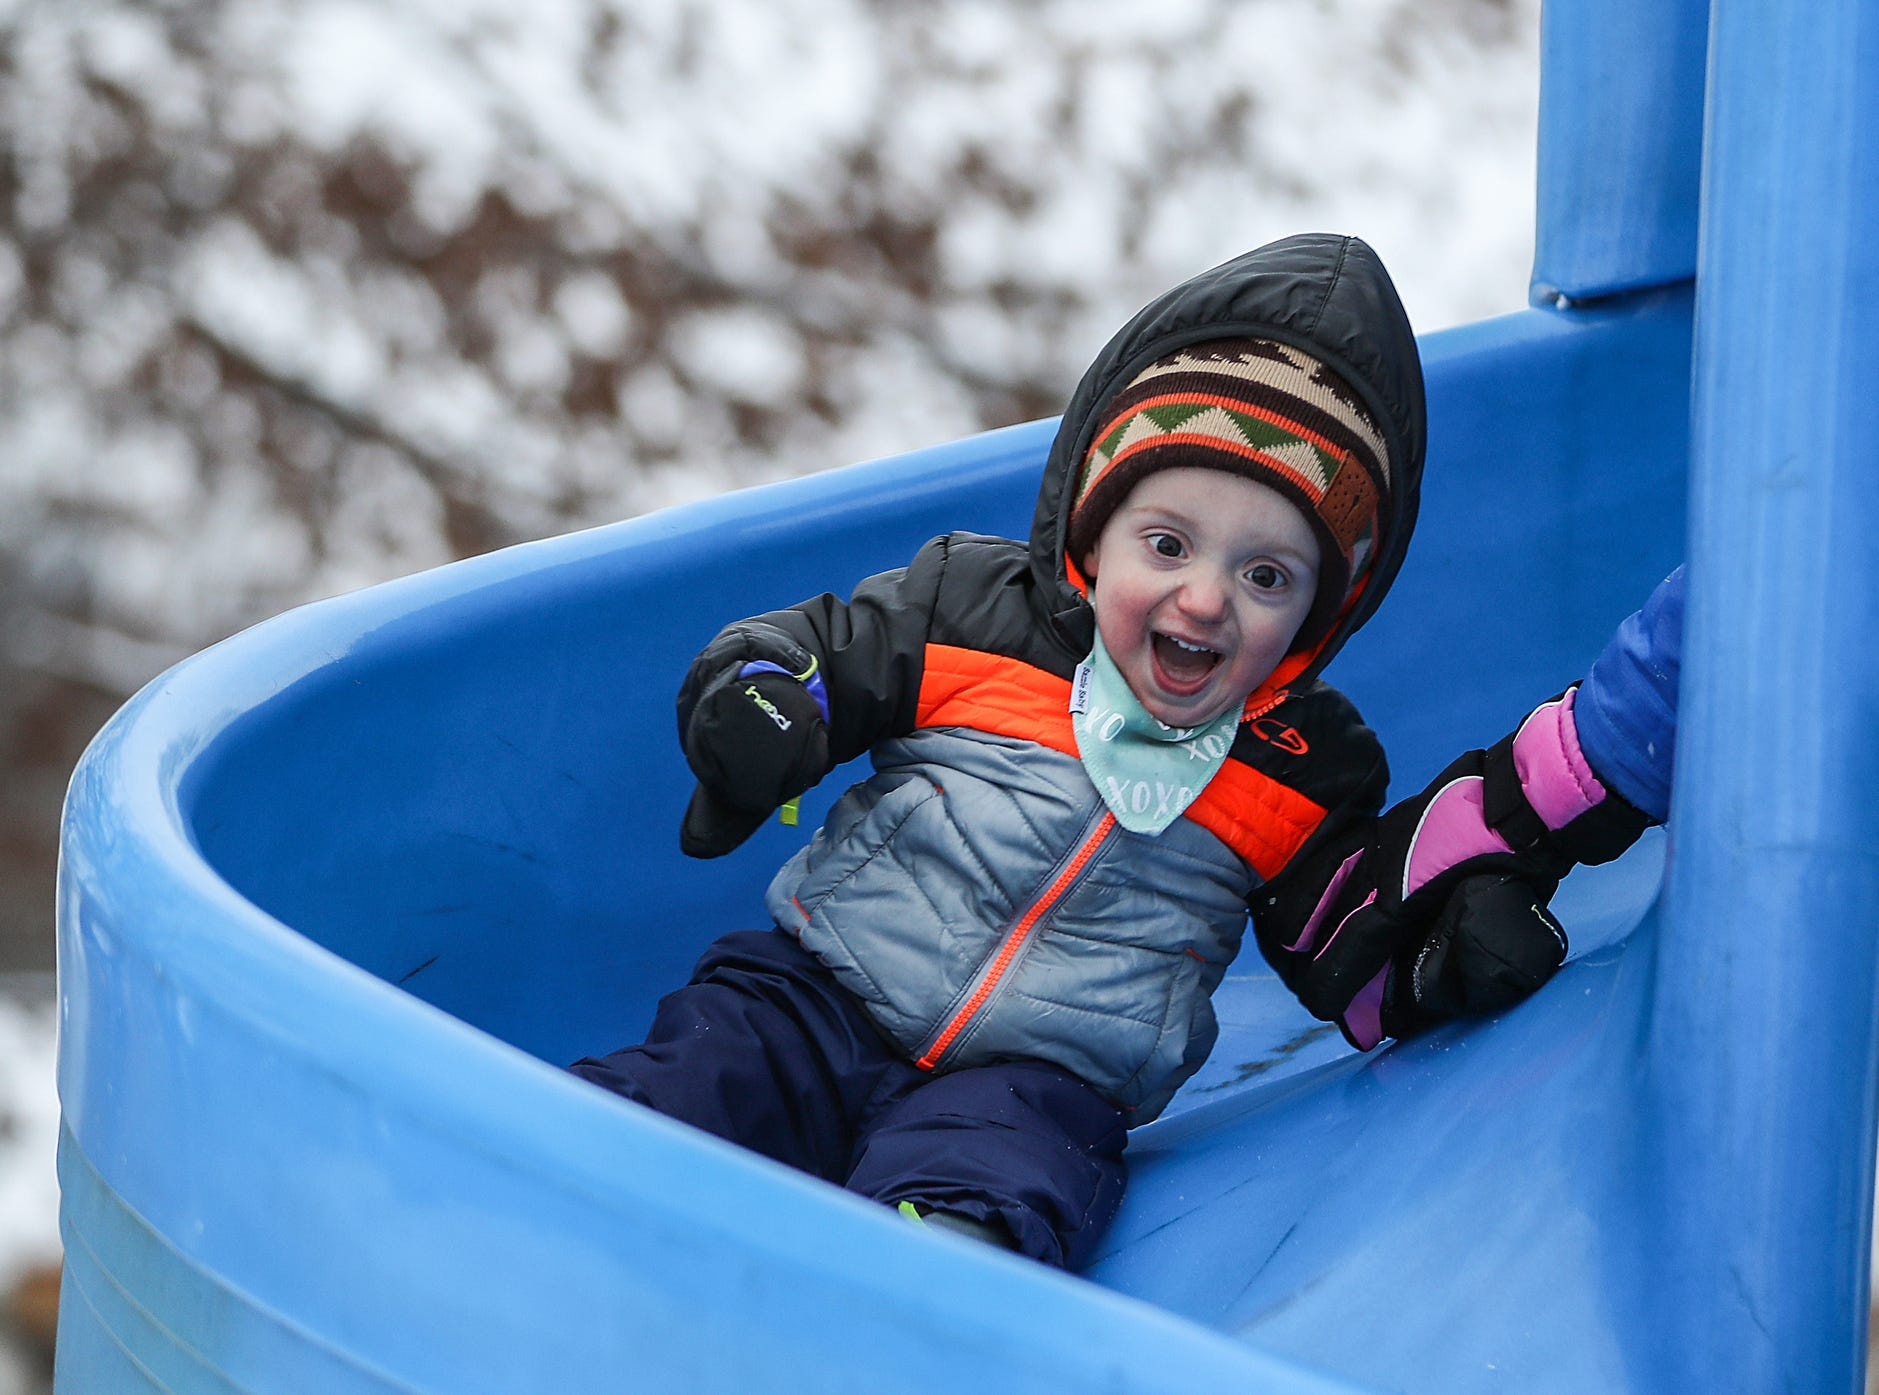 Cooper Ellis, 1, zooms down a slide at Highland Park in Indianapolis, Sunday, Jan. 13, 2019.